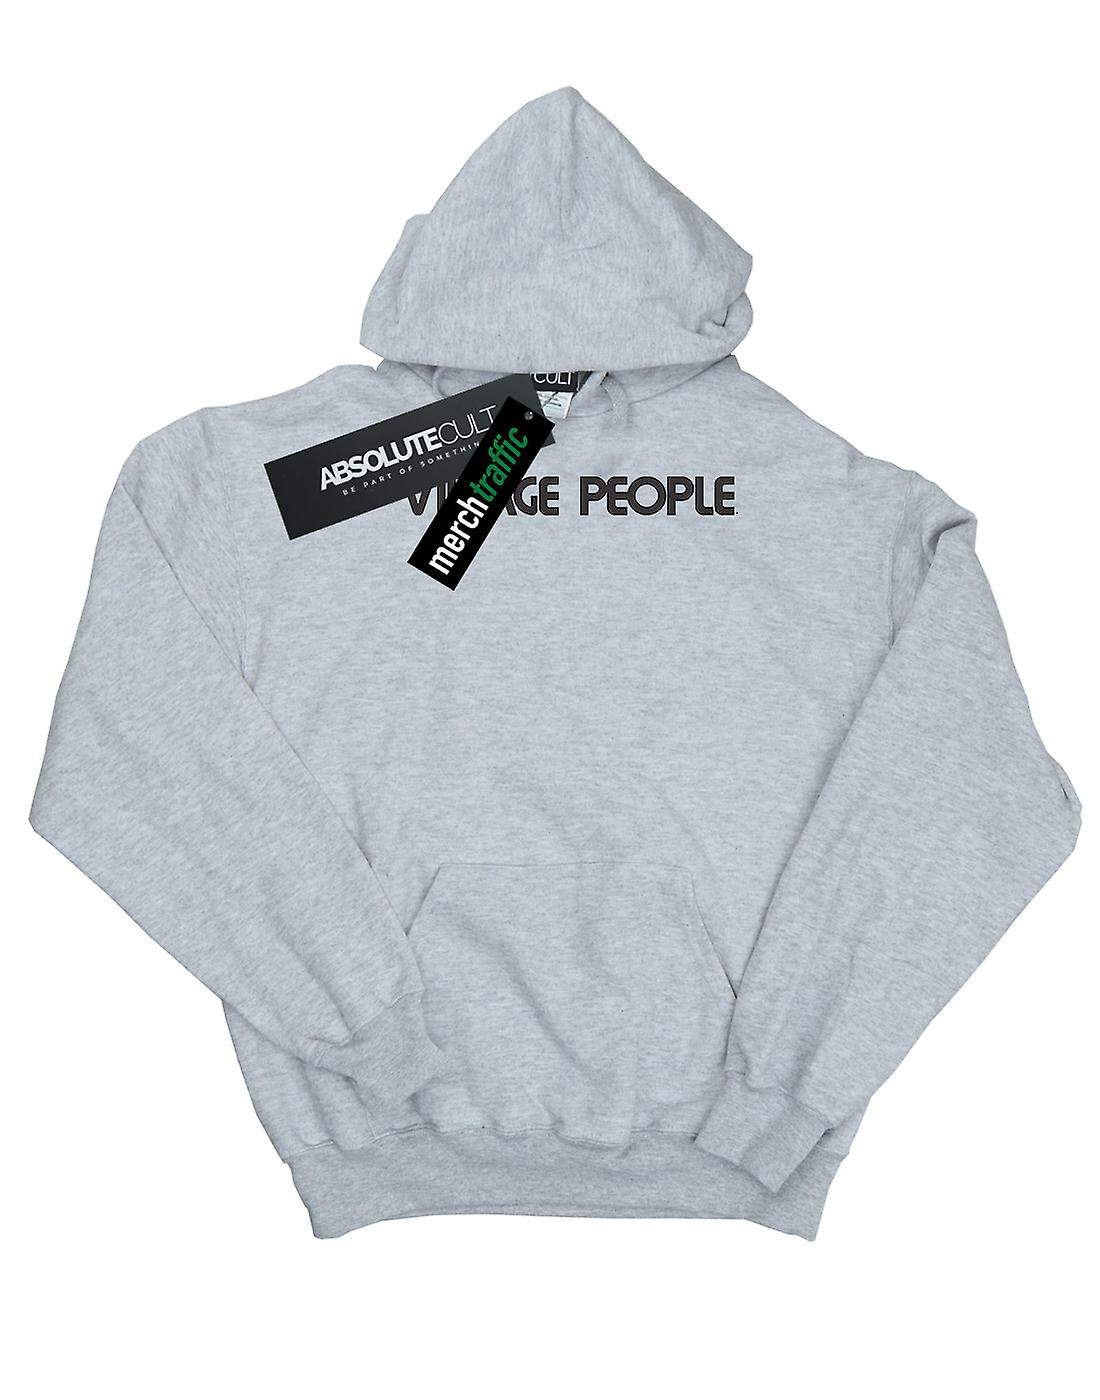 Village People Boys Text Logo Hoodie